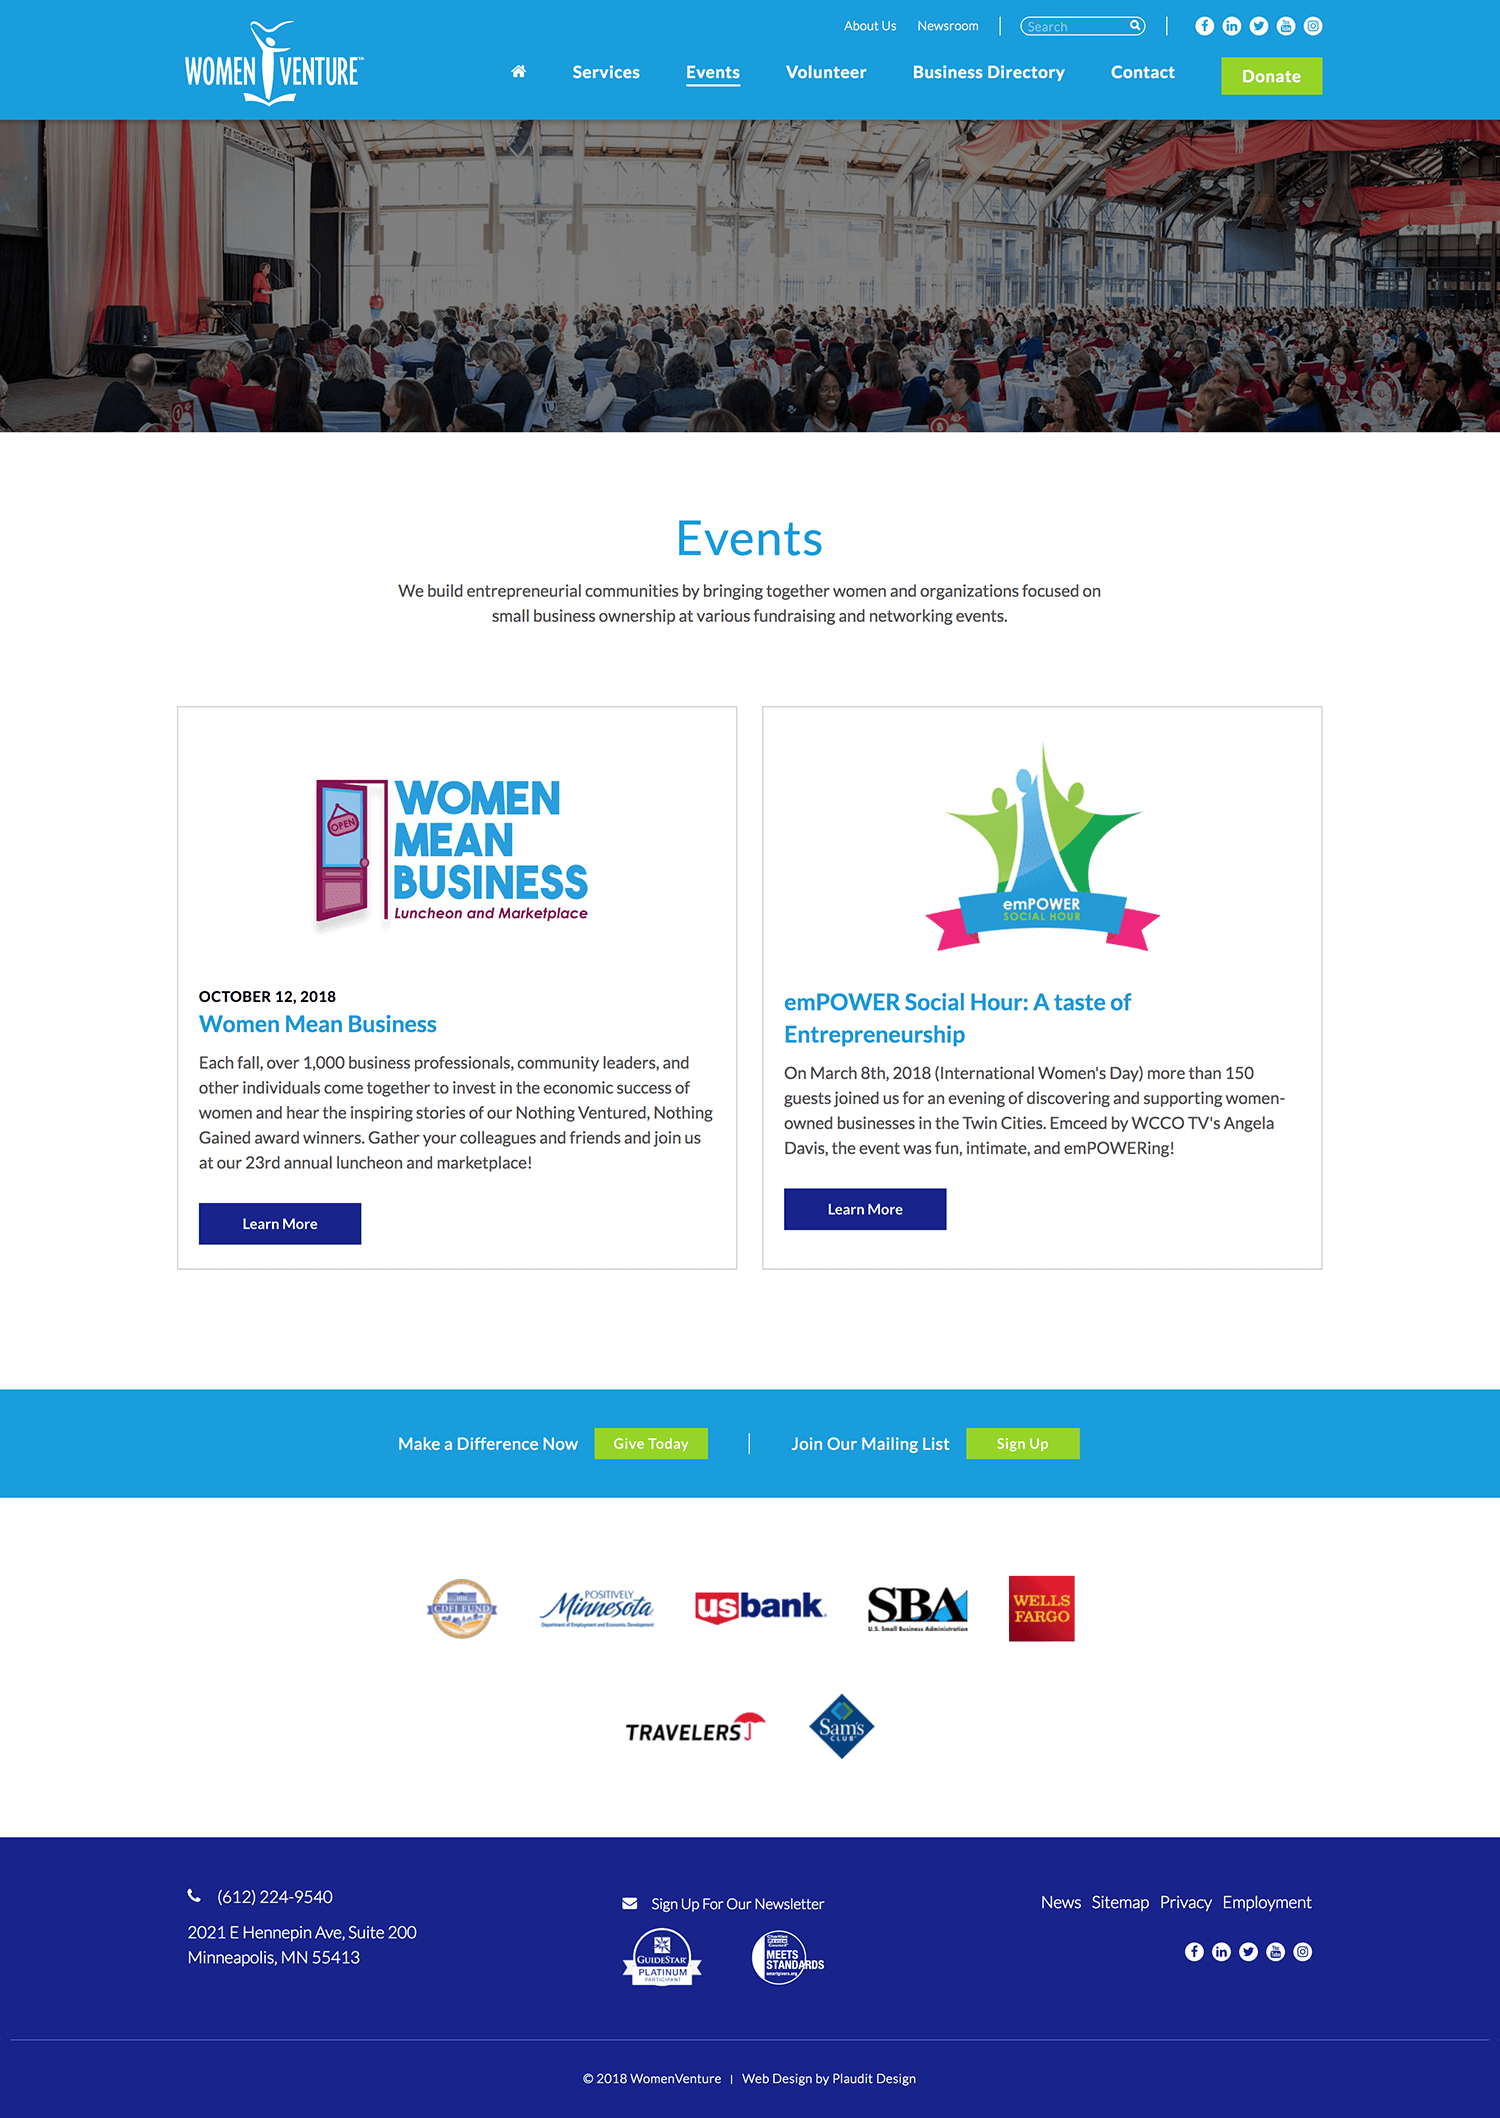 WomenVenture Web Design: Annual Events Page